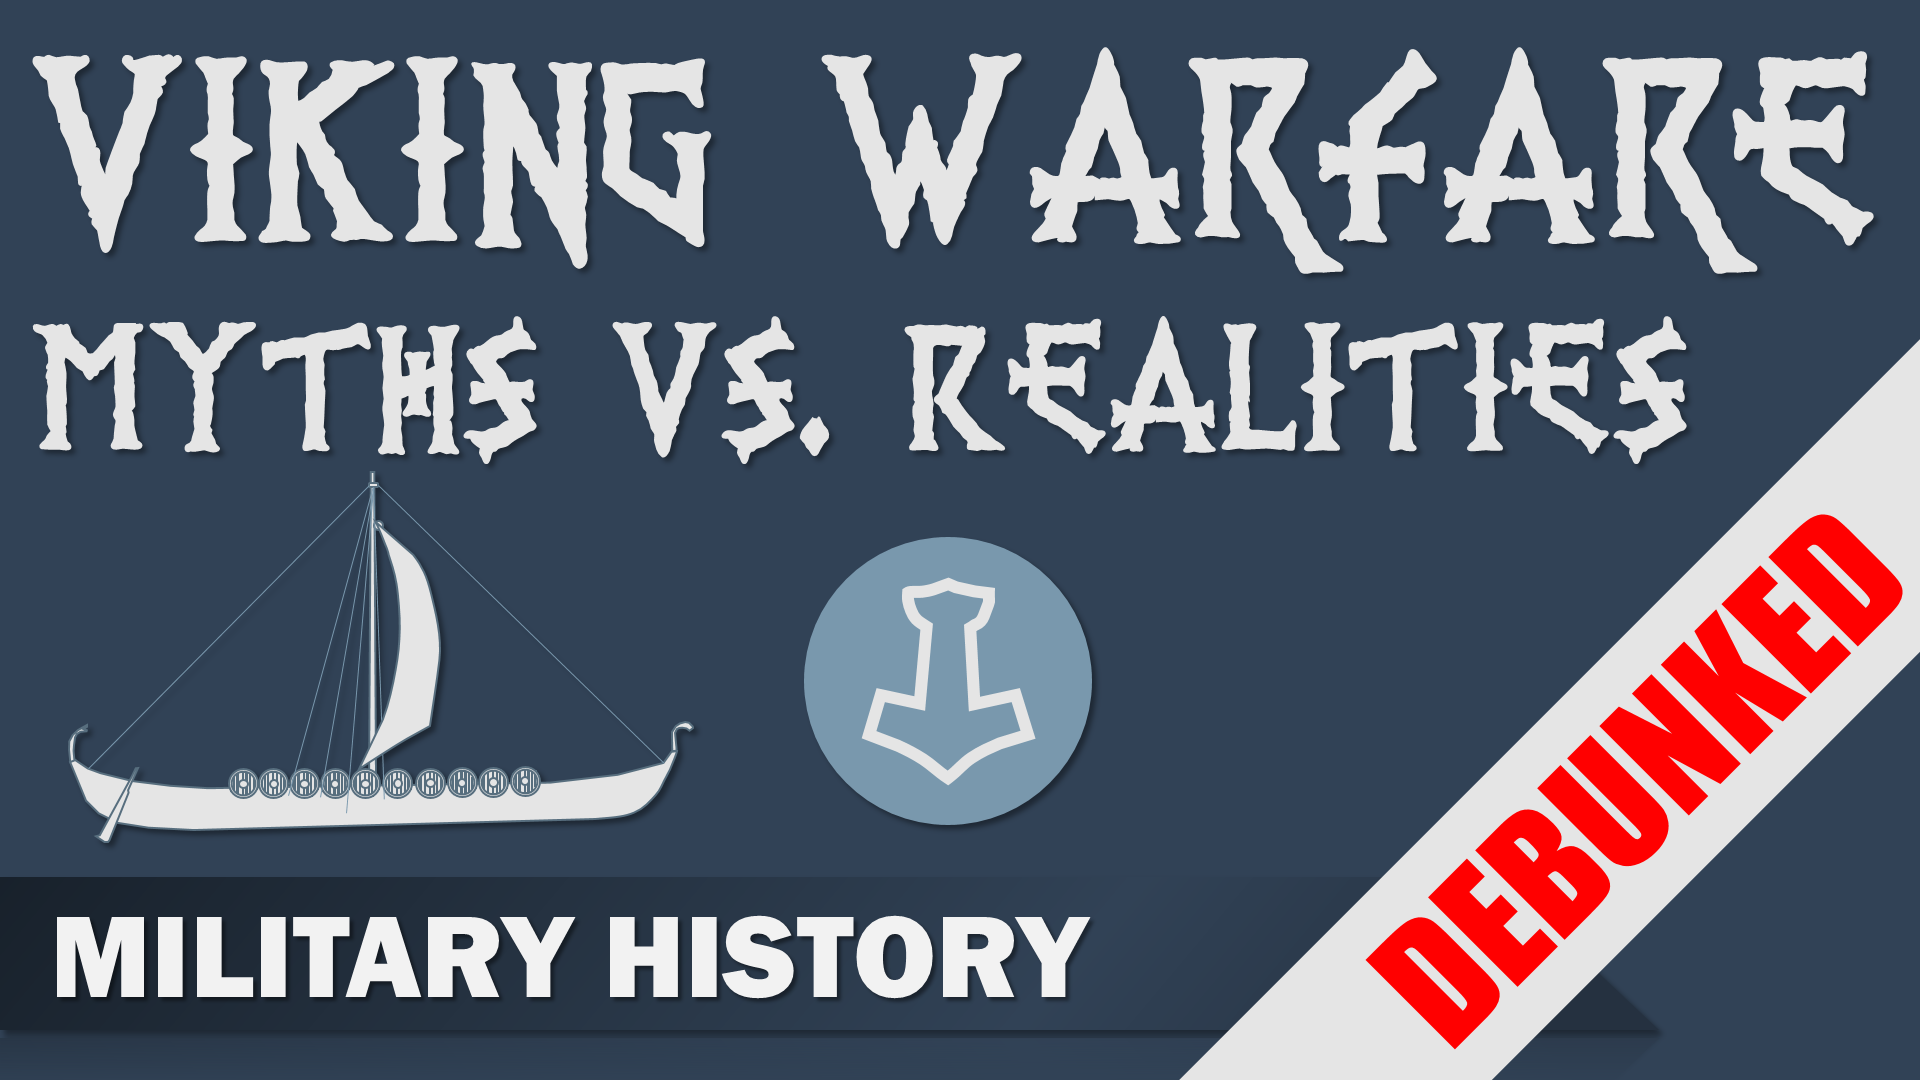 Viking Warfare Myths Vs Realities Debunked